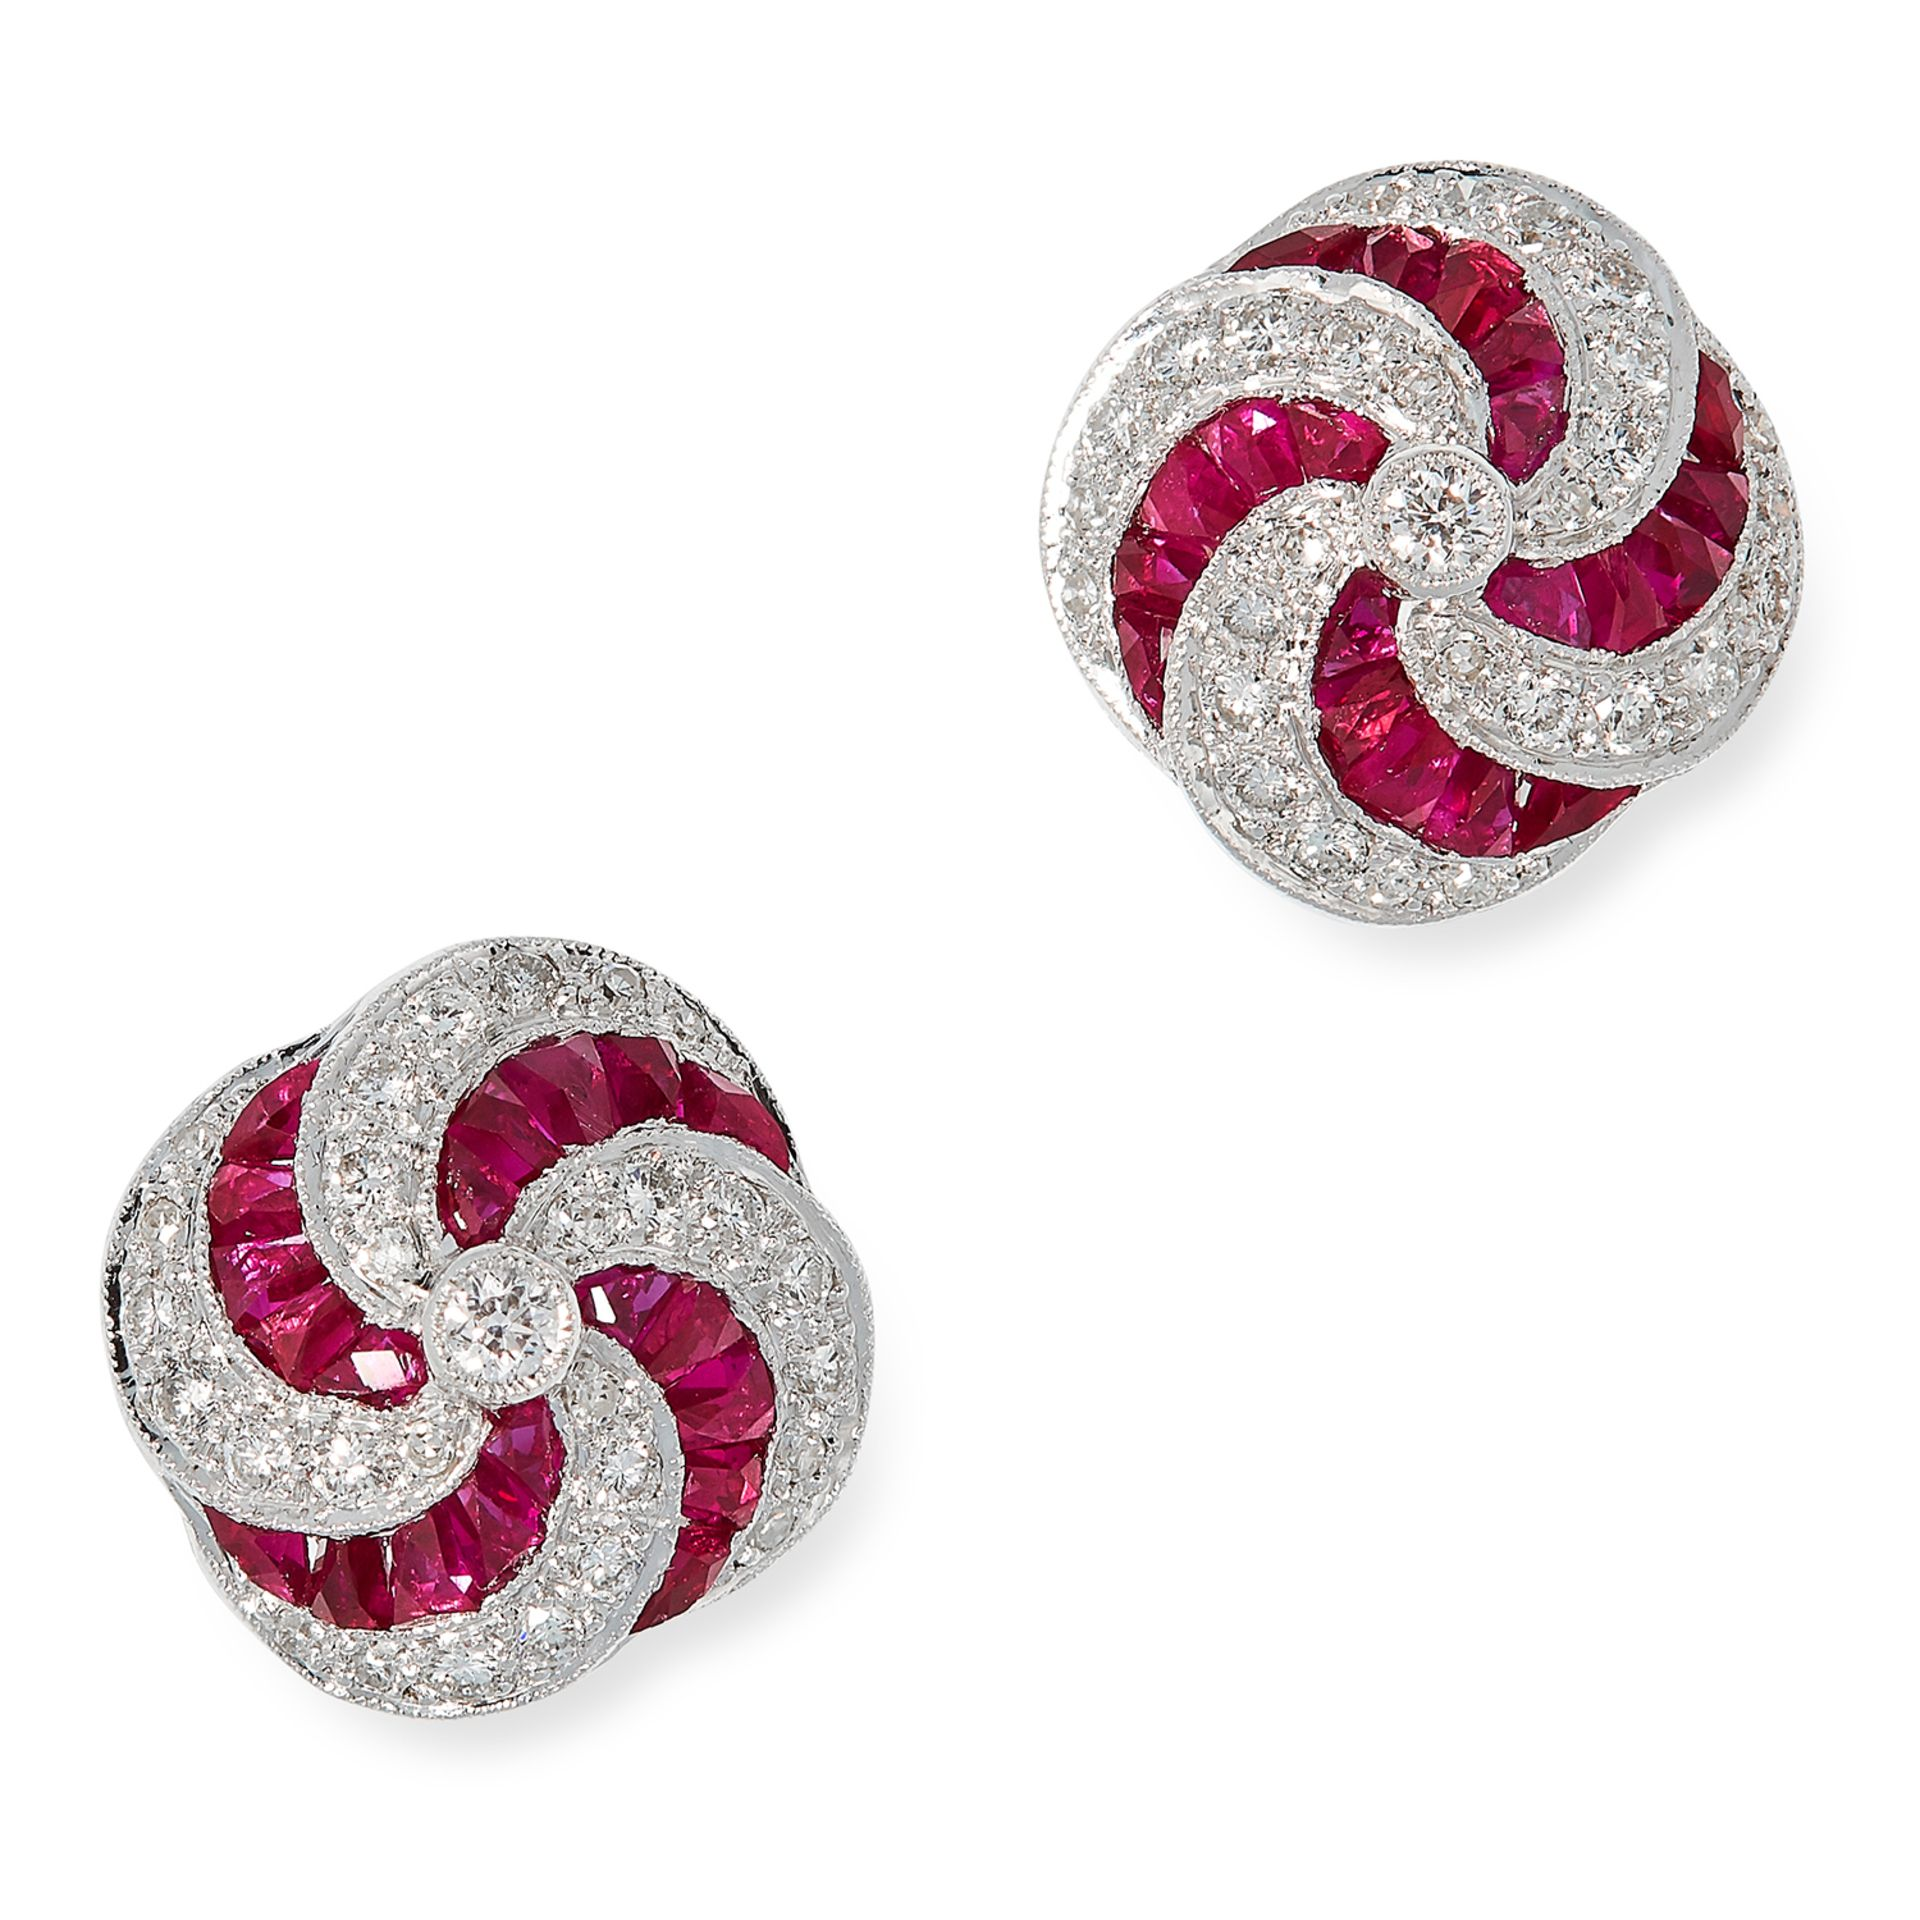 RUBY AND DIAMOND STUD EARRINGS in twisted design set with step cut rubies and round cut diamonds,